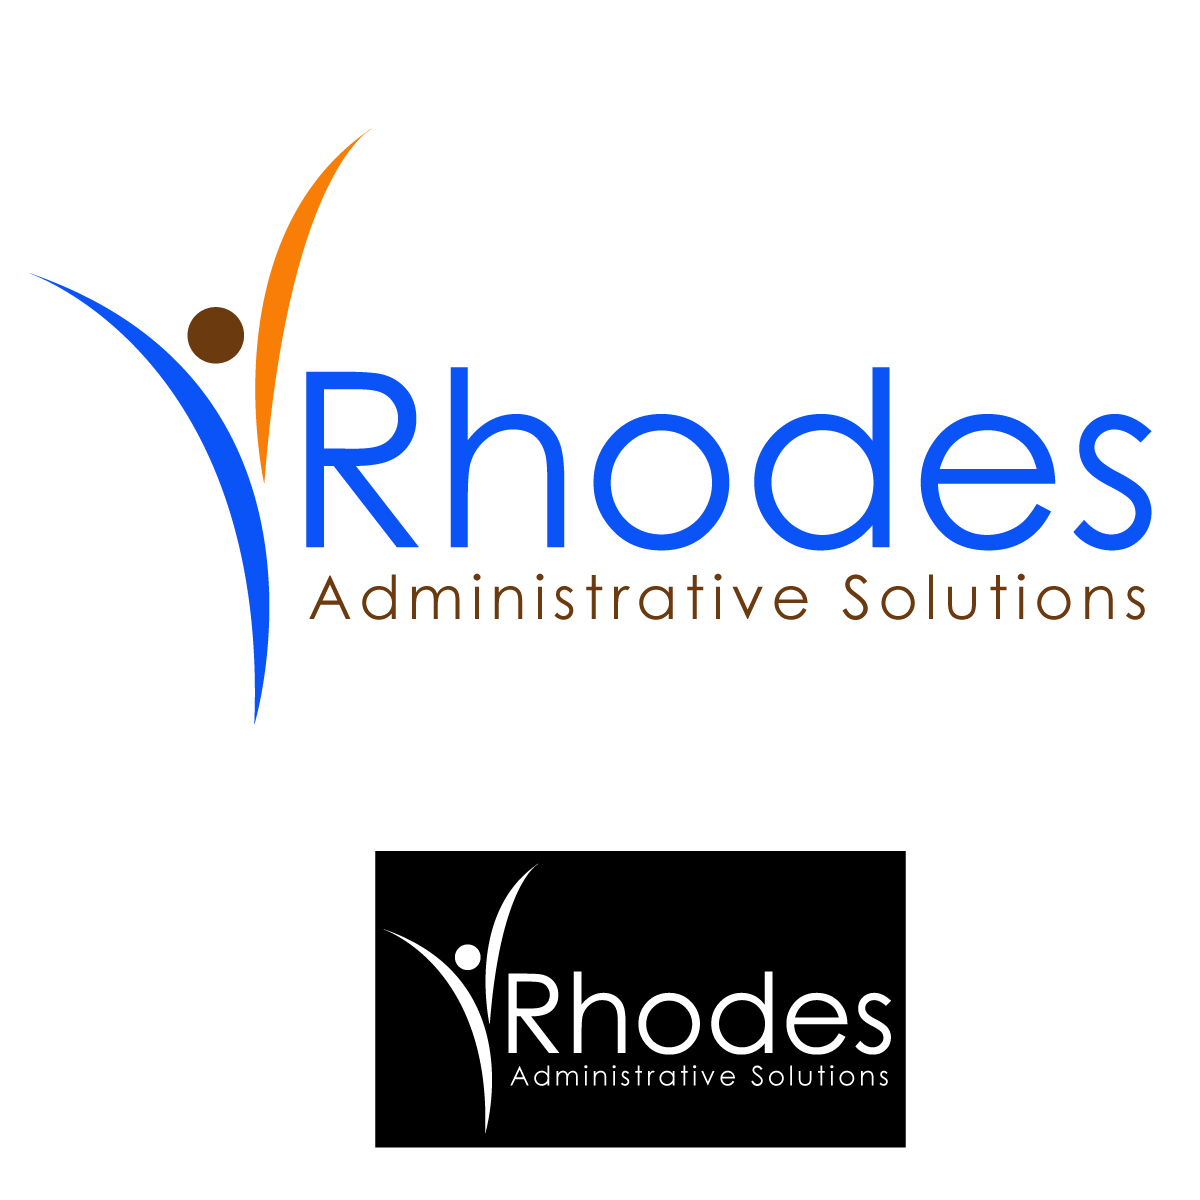 Logo Design by storm - Entry No. 101 in the Logo Design Contest Rhodes Administrative Solutions.